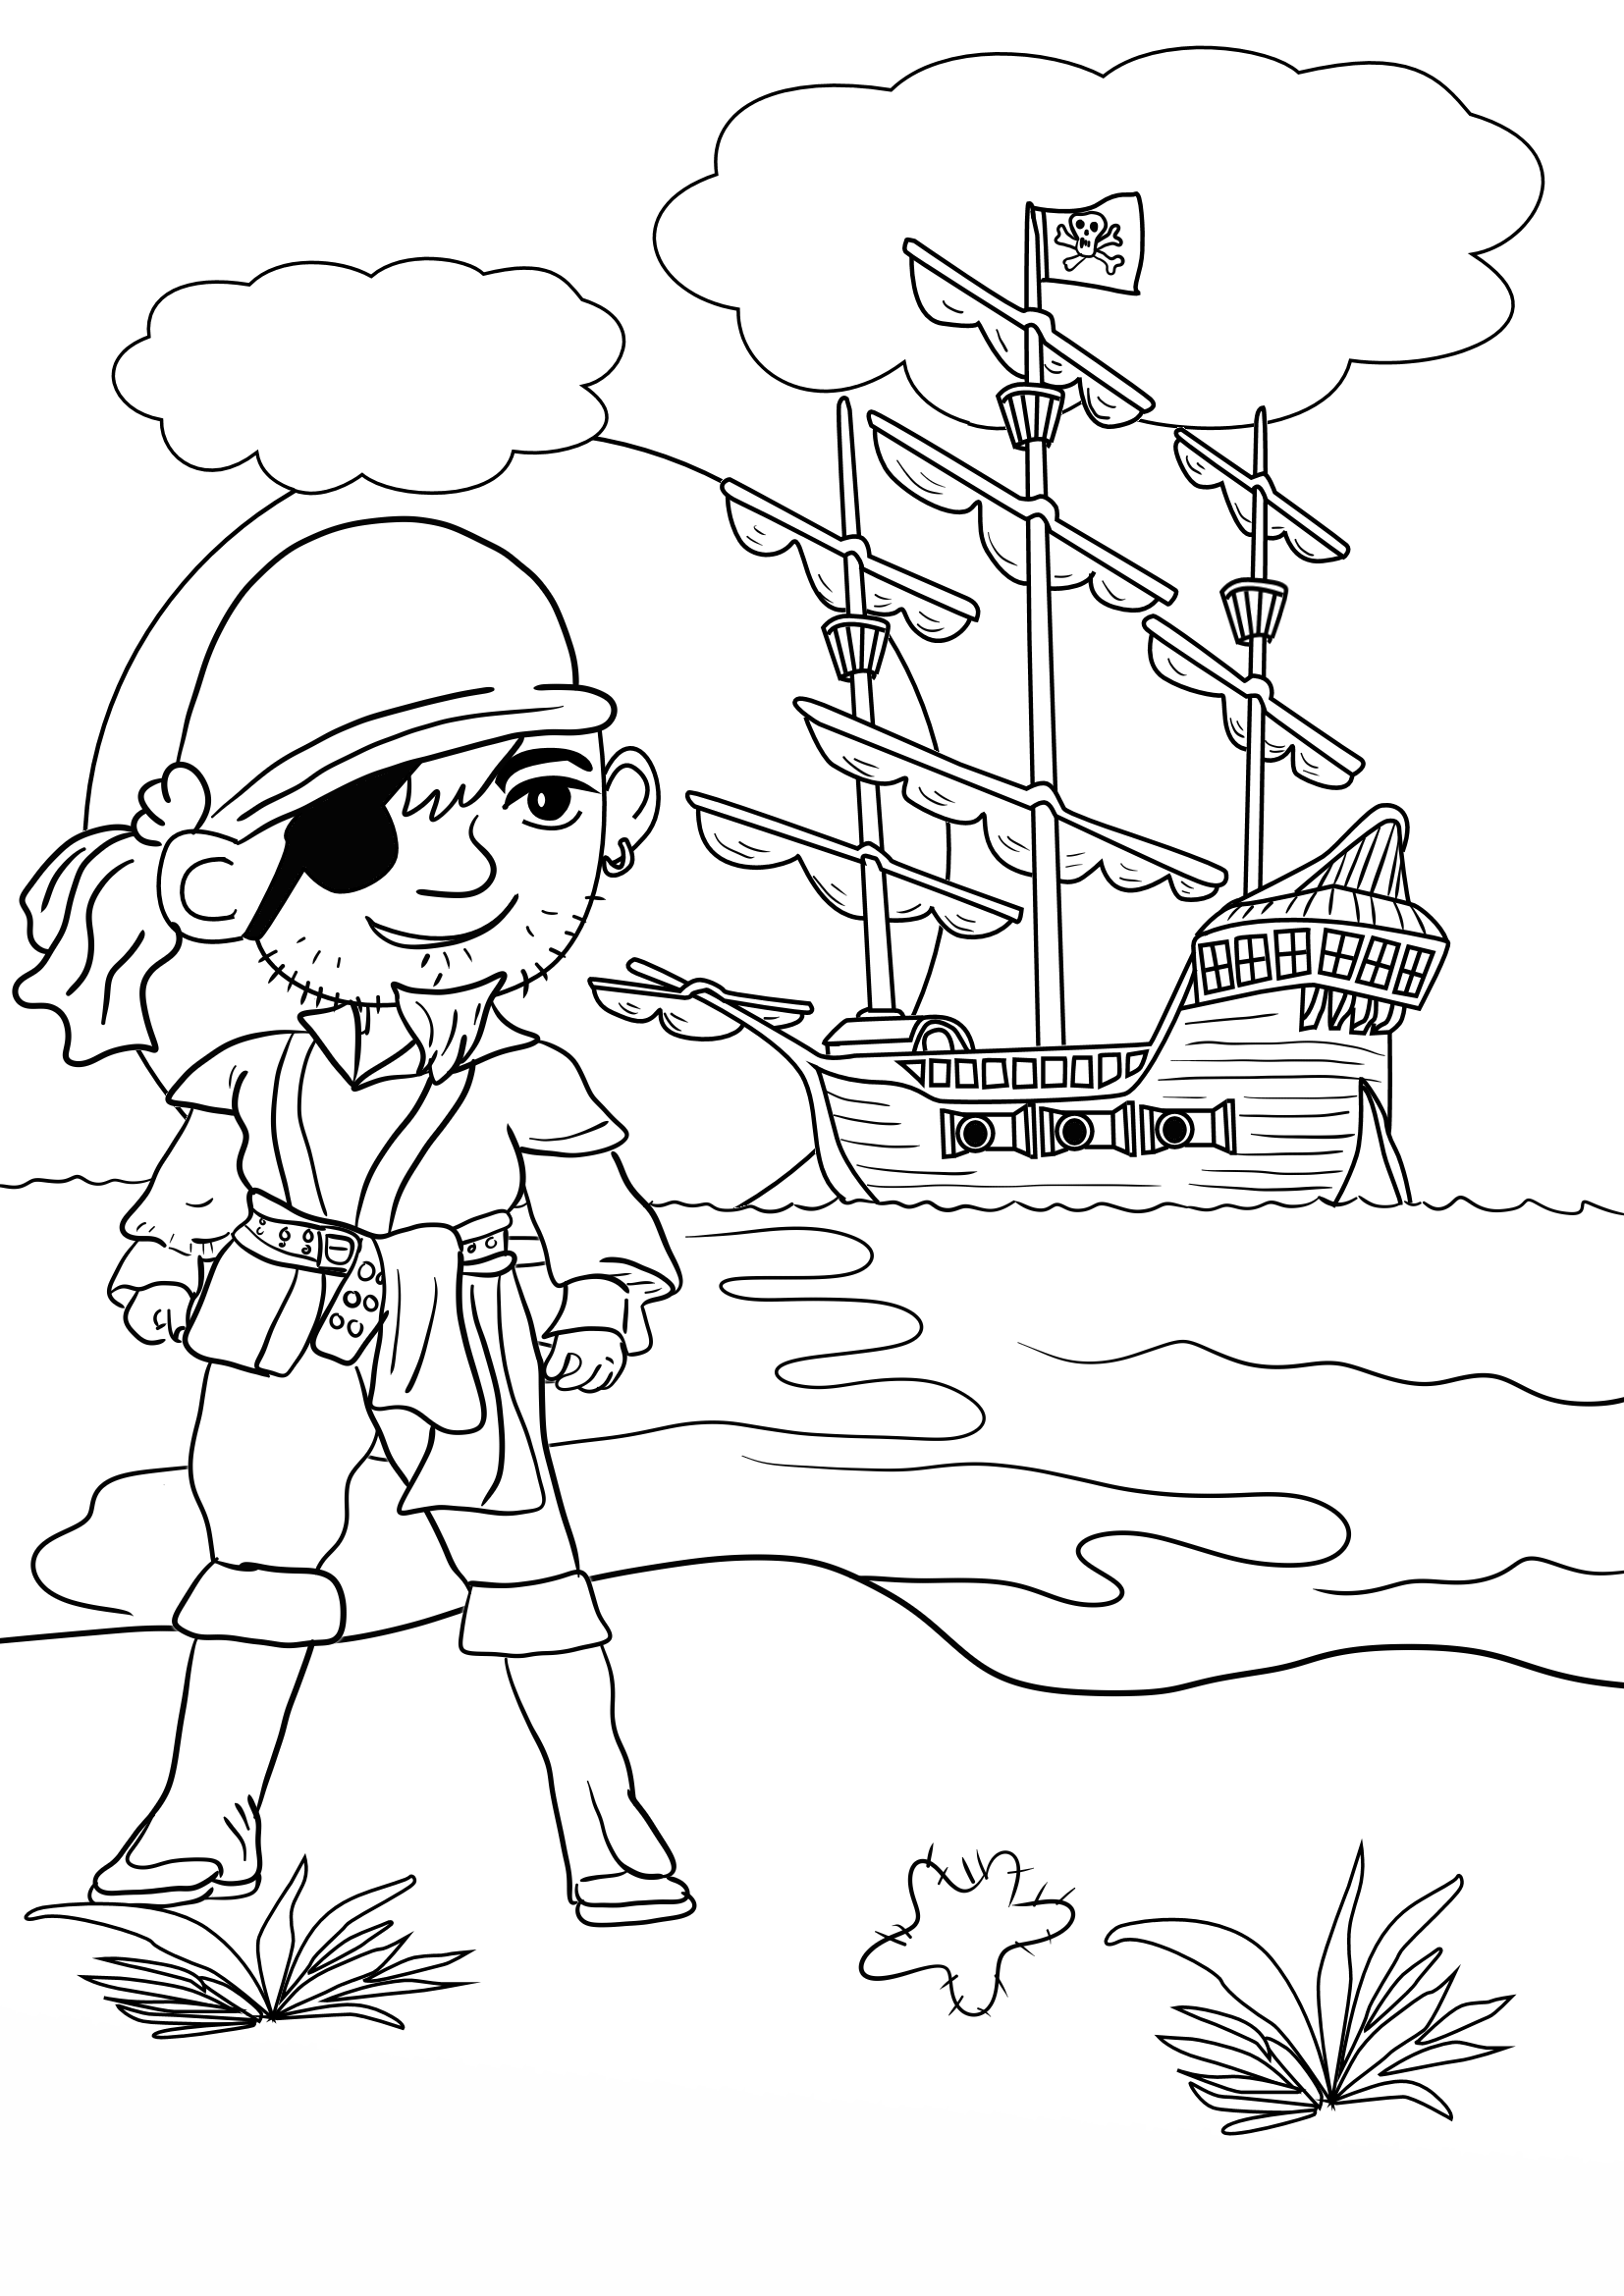 Pirate Colouring Pages for Kids Pirate coloring pages